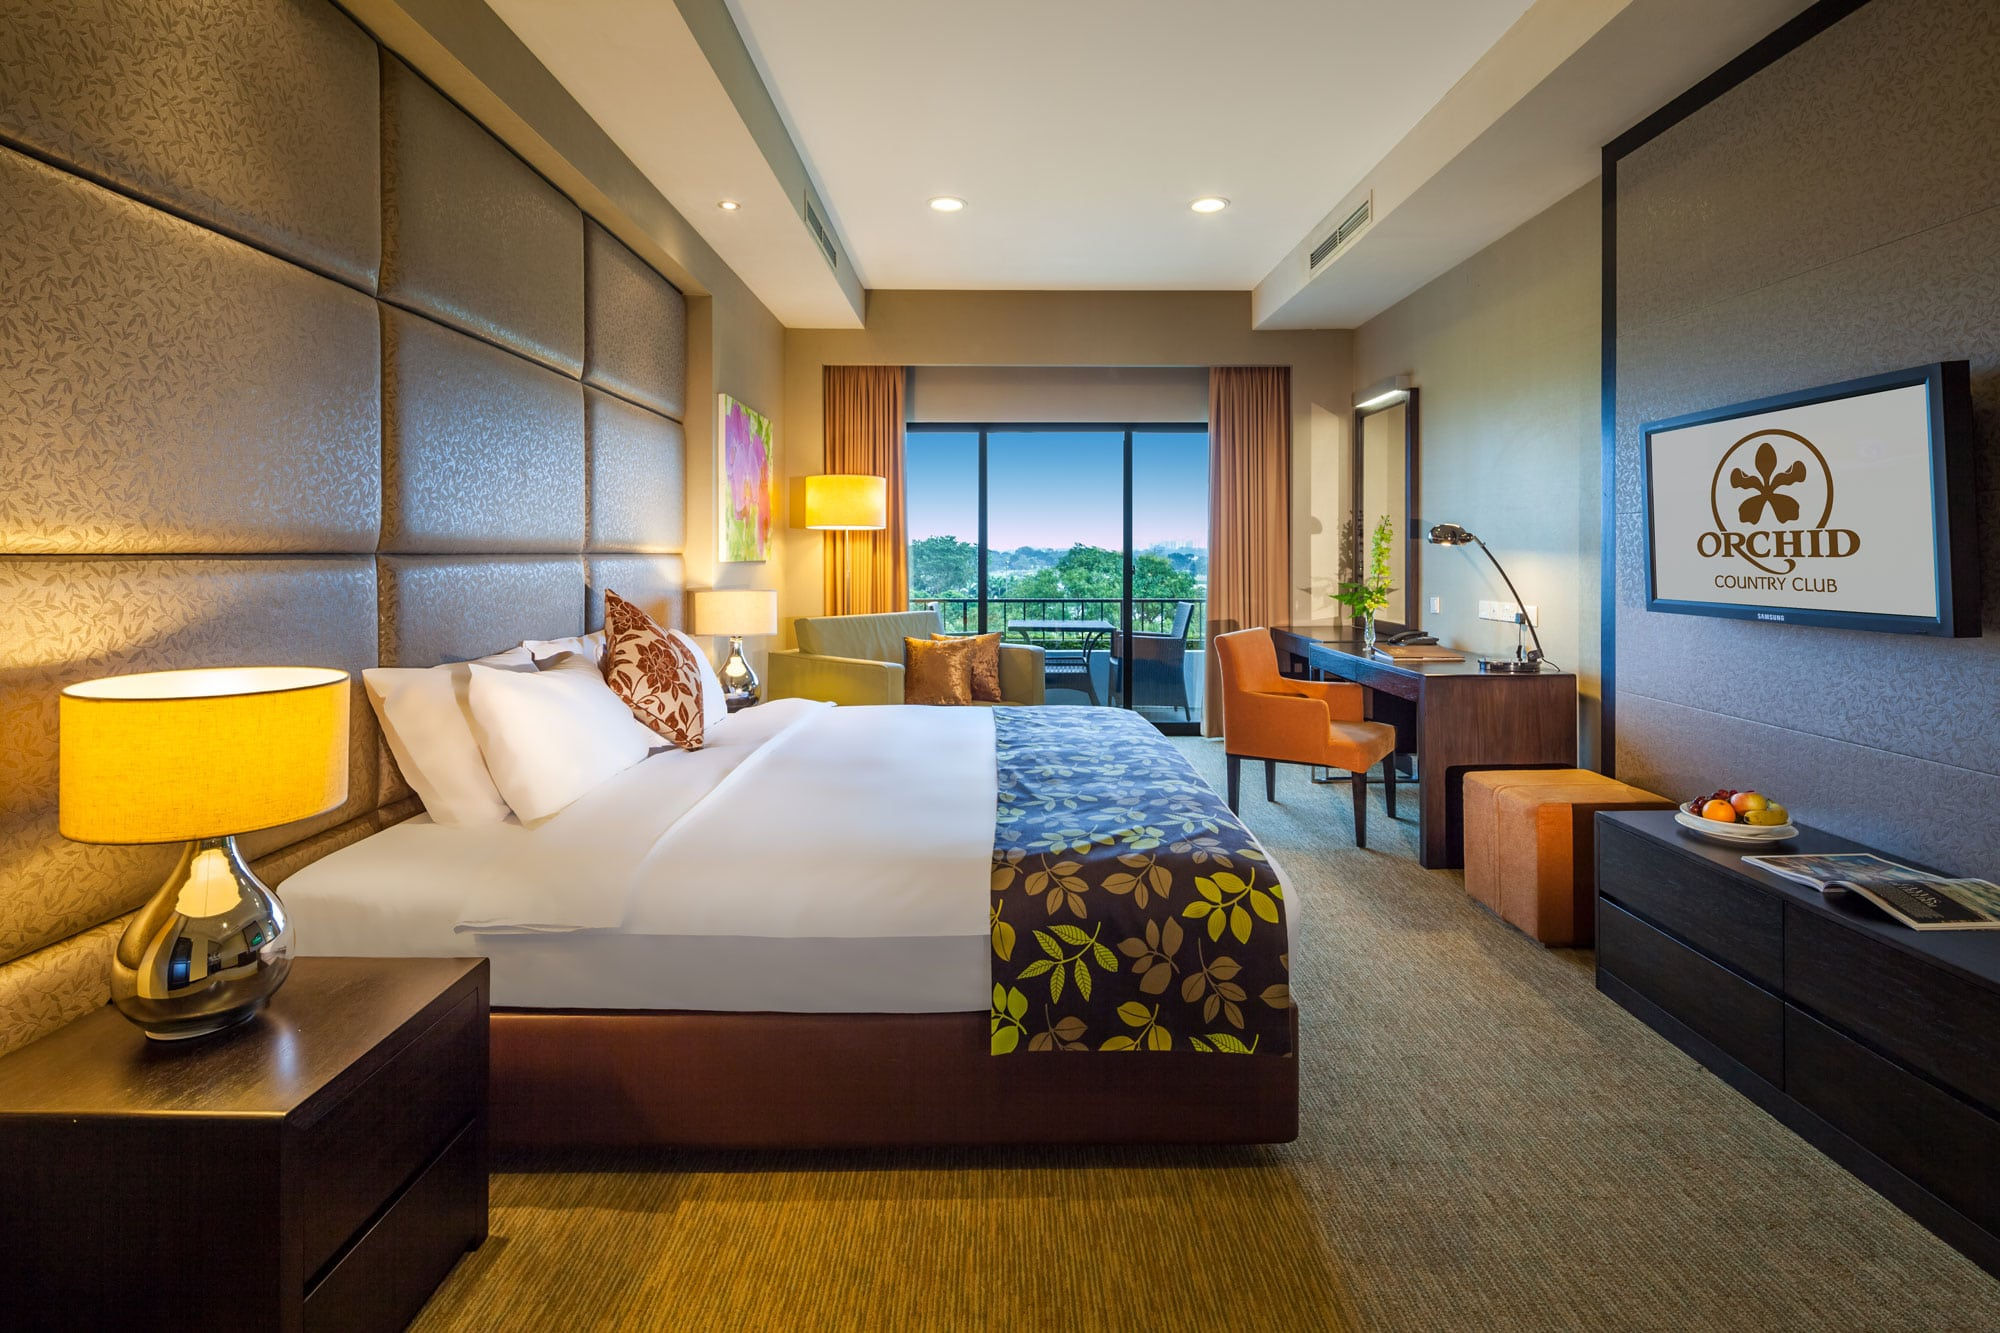 Deluxe Room - Orchid Country Club